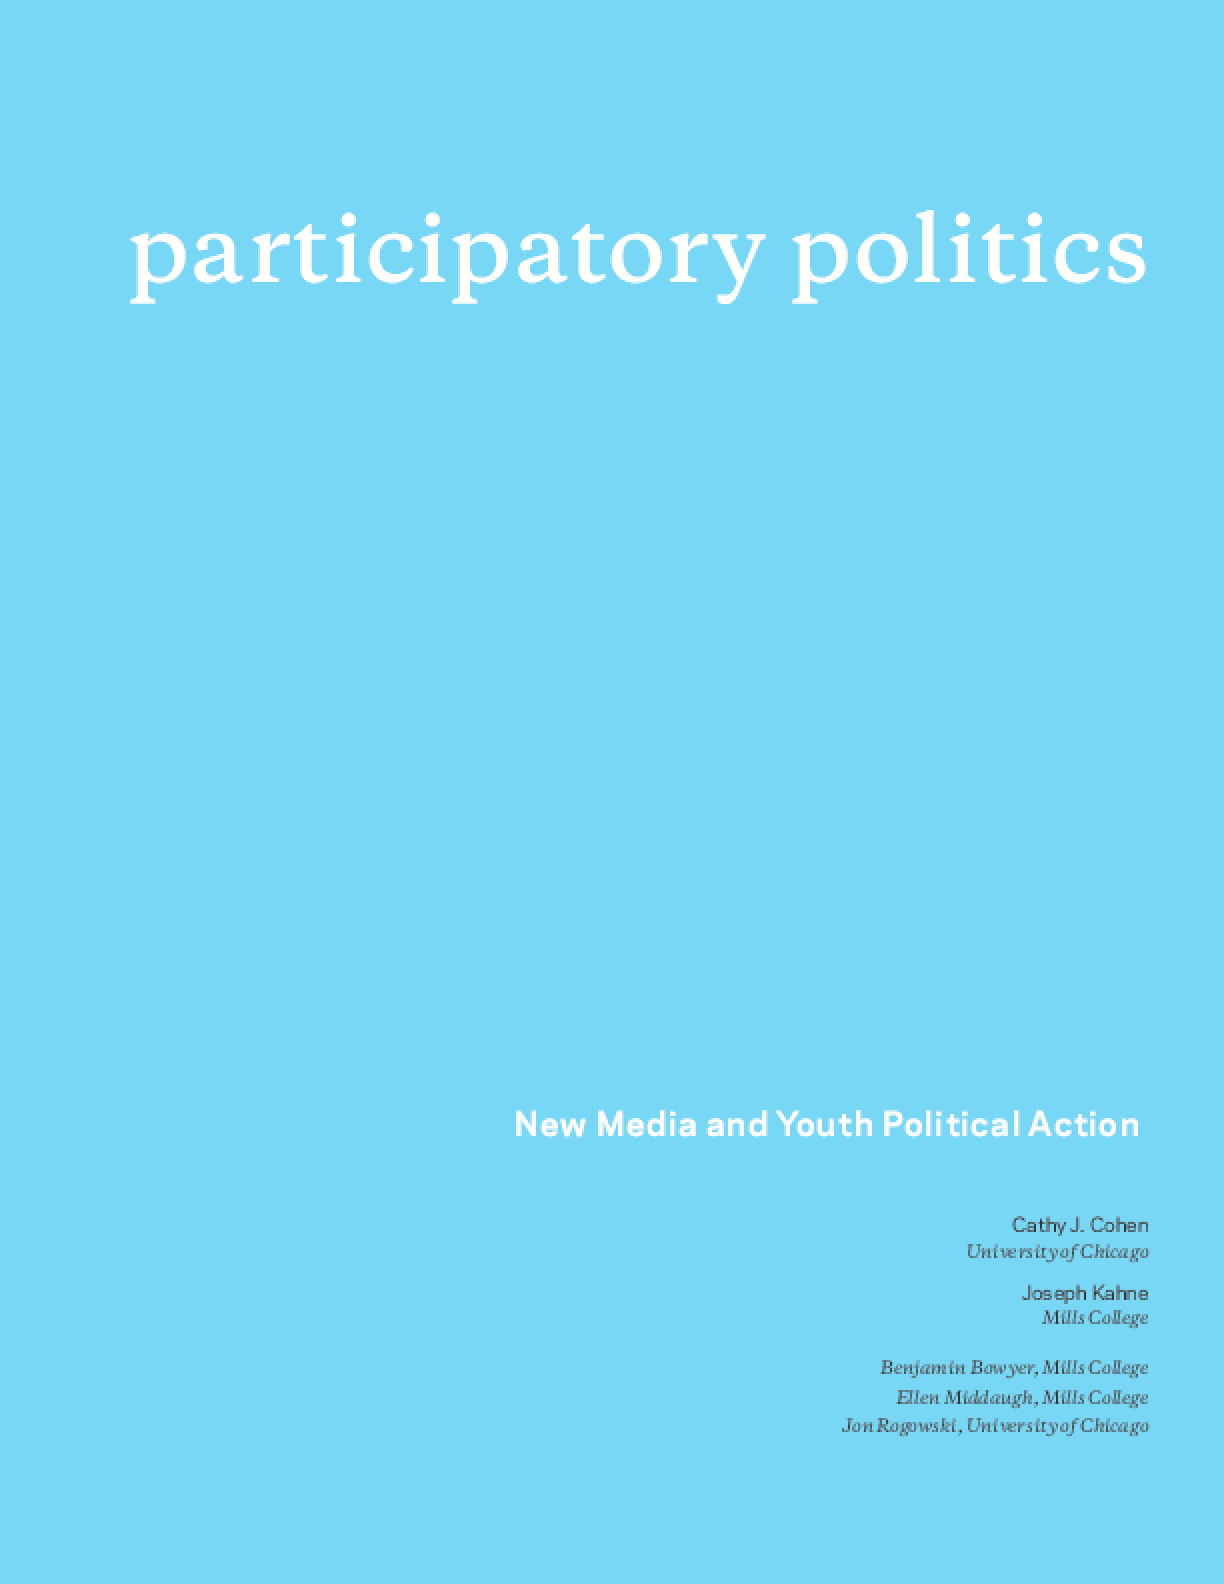 New Media and Youth Political Action